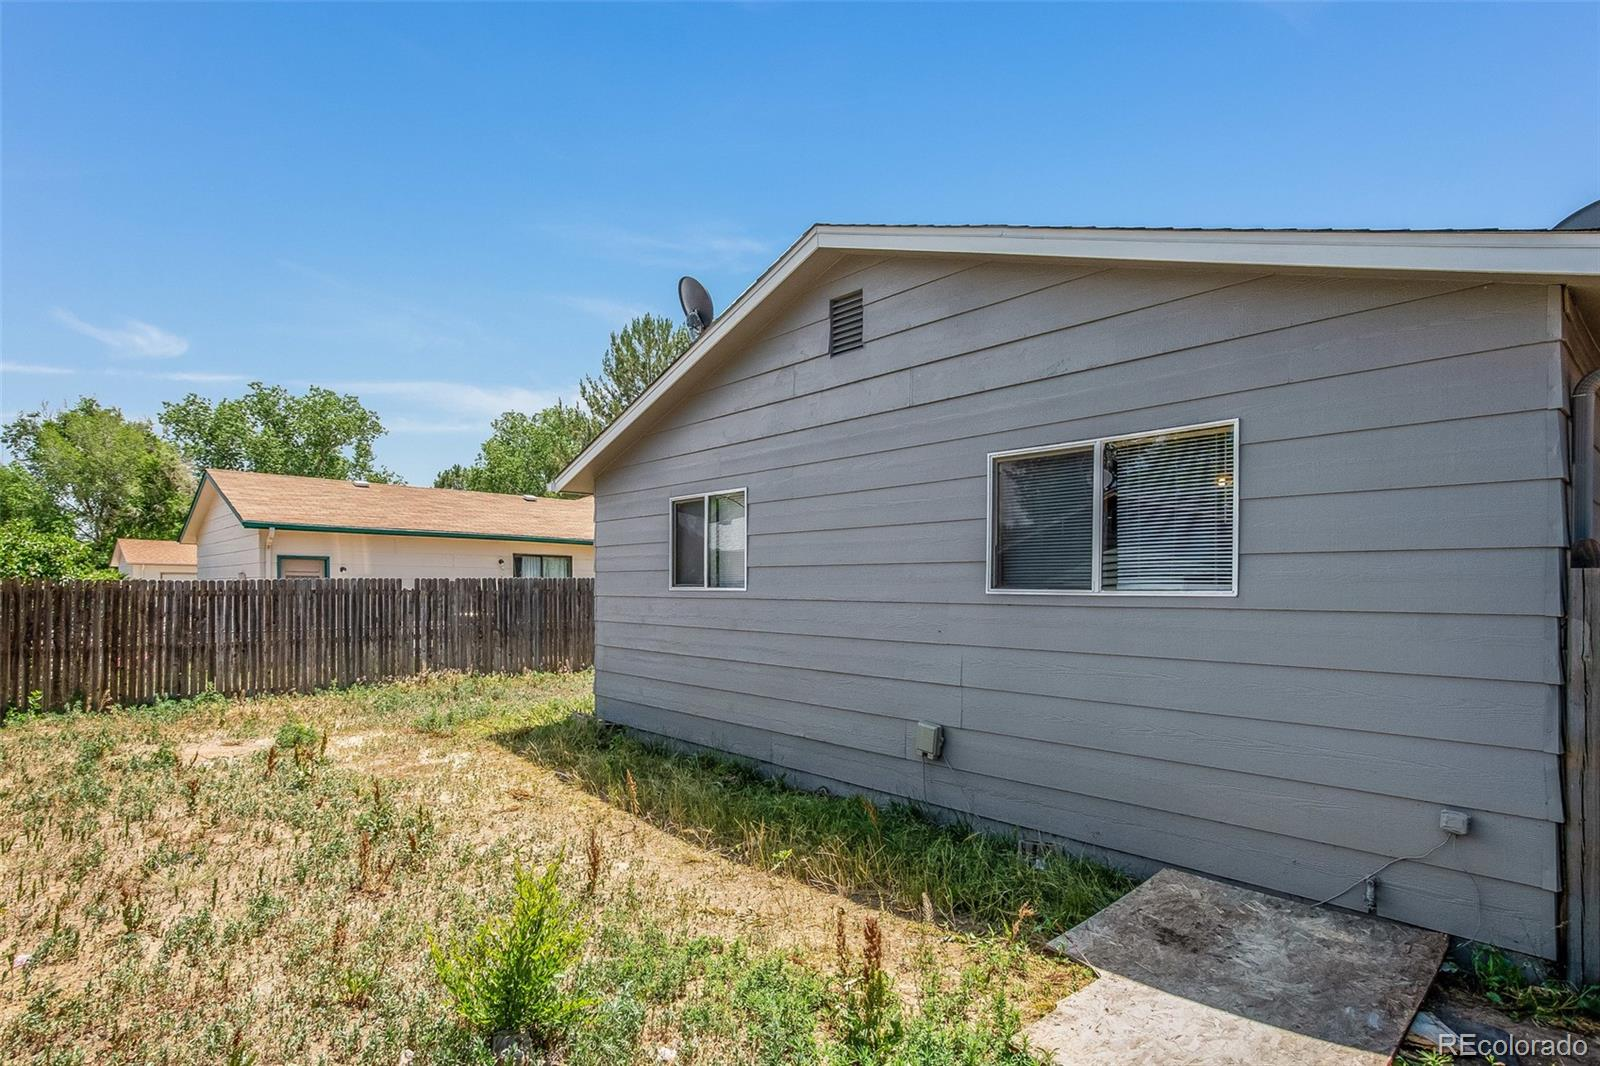 MLS# 8434629 - 2 - 2159 Wedgewood Drive, Greeley, CO 80631